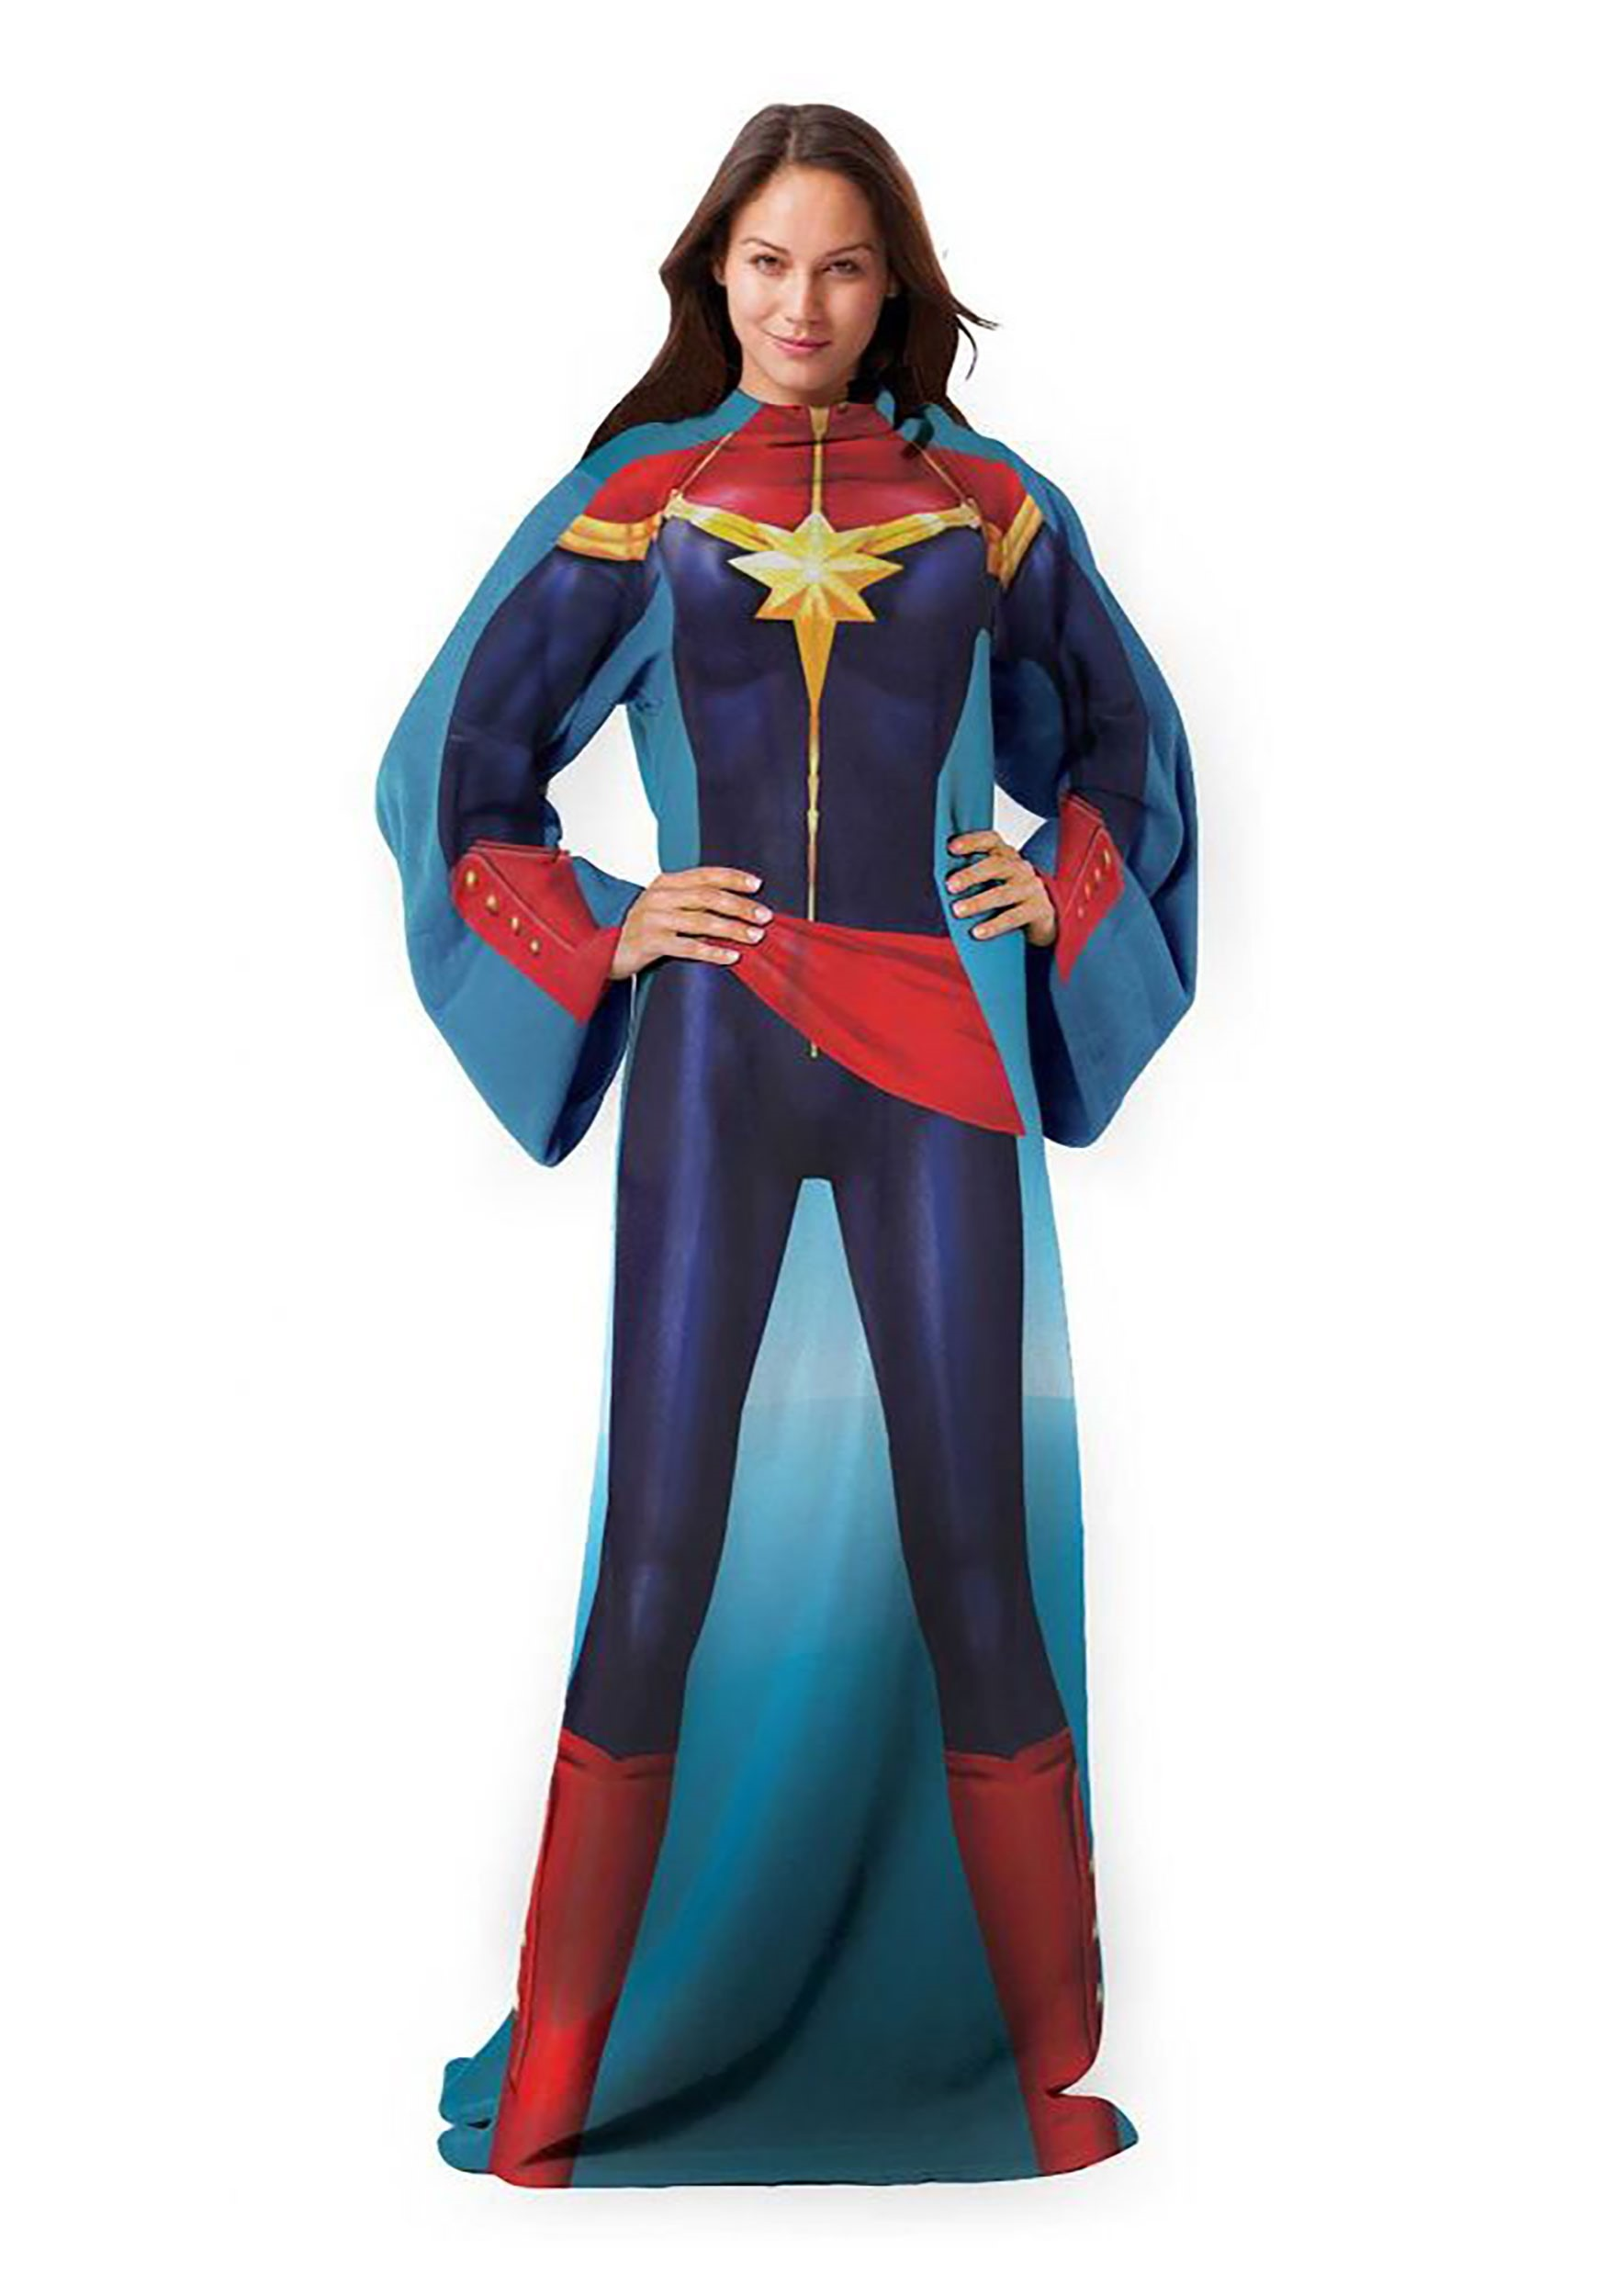 Adult Comfy Throw Avengers Mighty Captain Marvel Shop for captain marvel costumes at walmart.com. avengers mighty captain marvel adult comfy throw